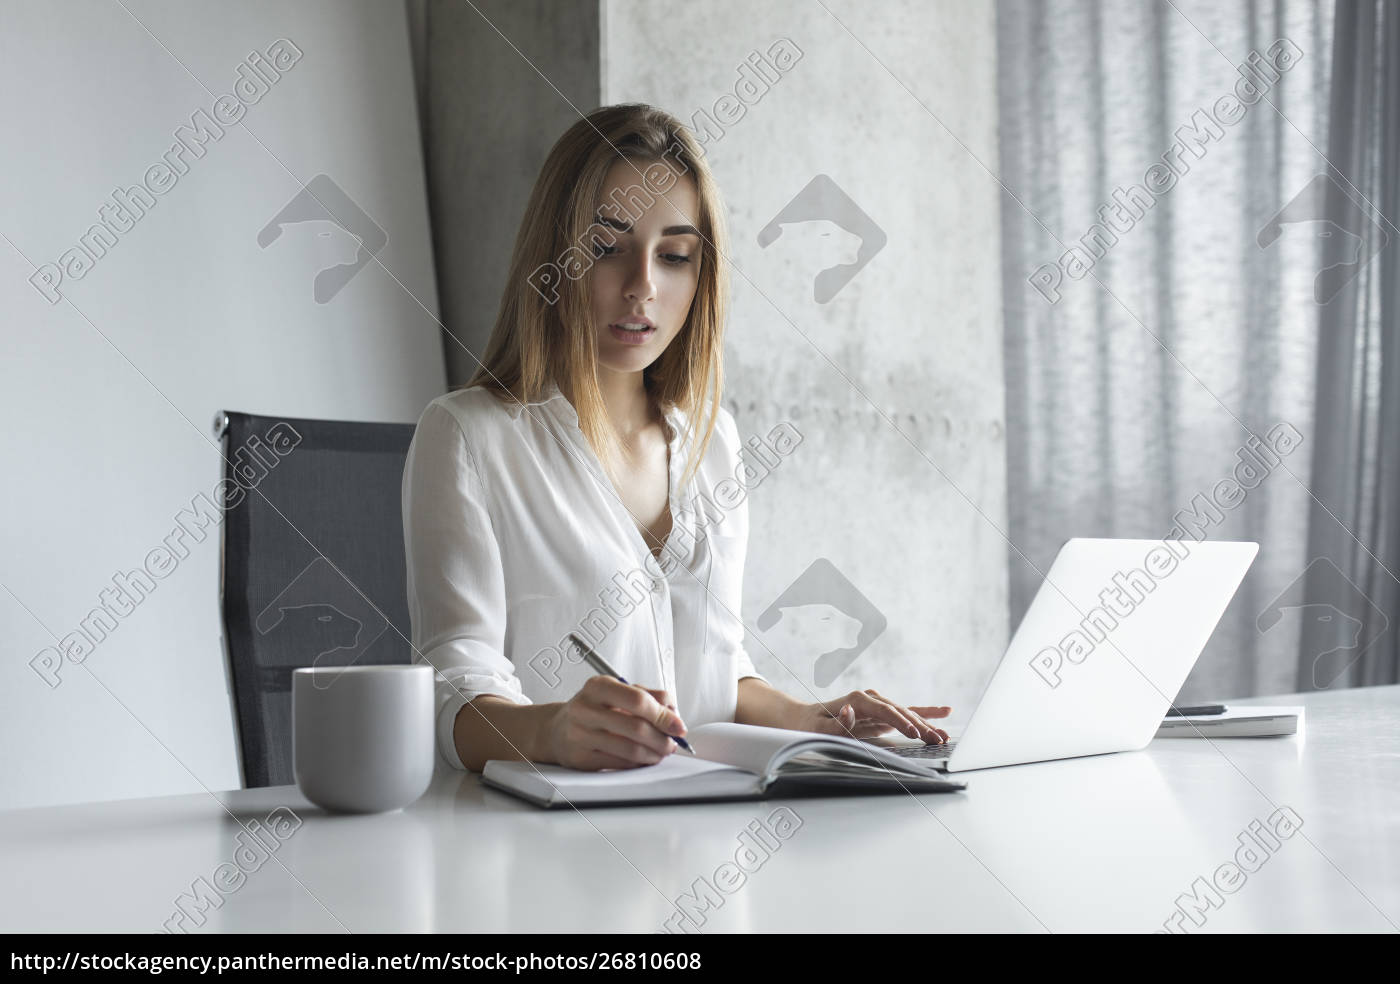 young, businesswoman, writing, notes, while, working - 26810608